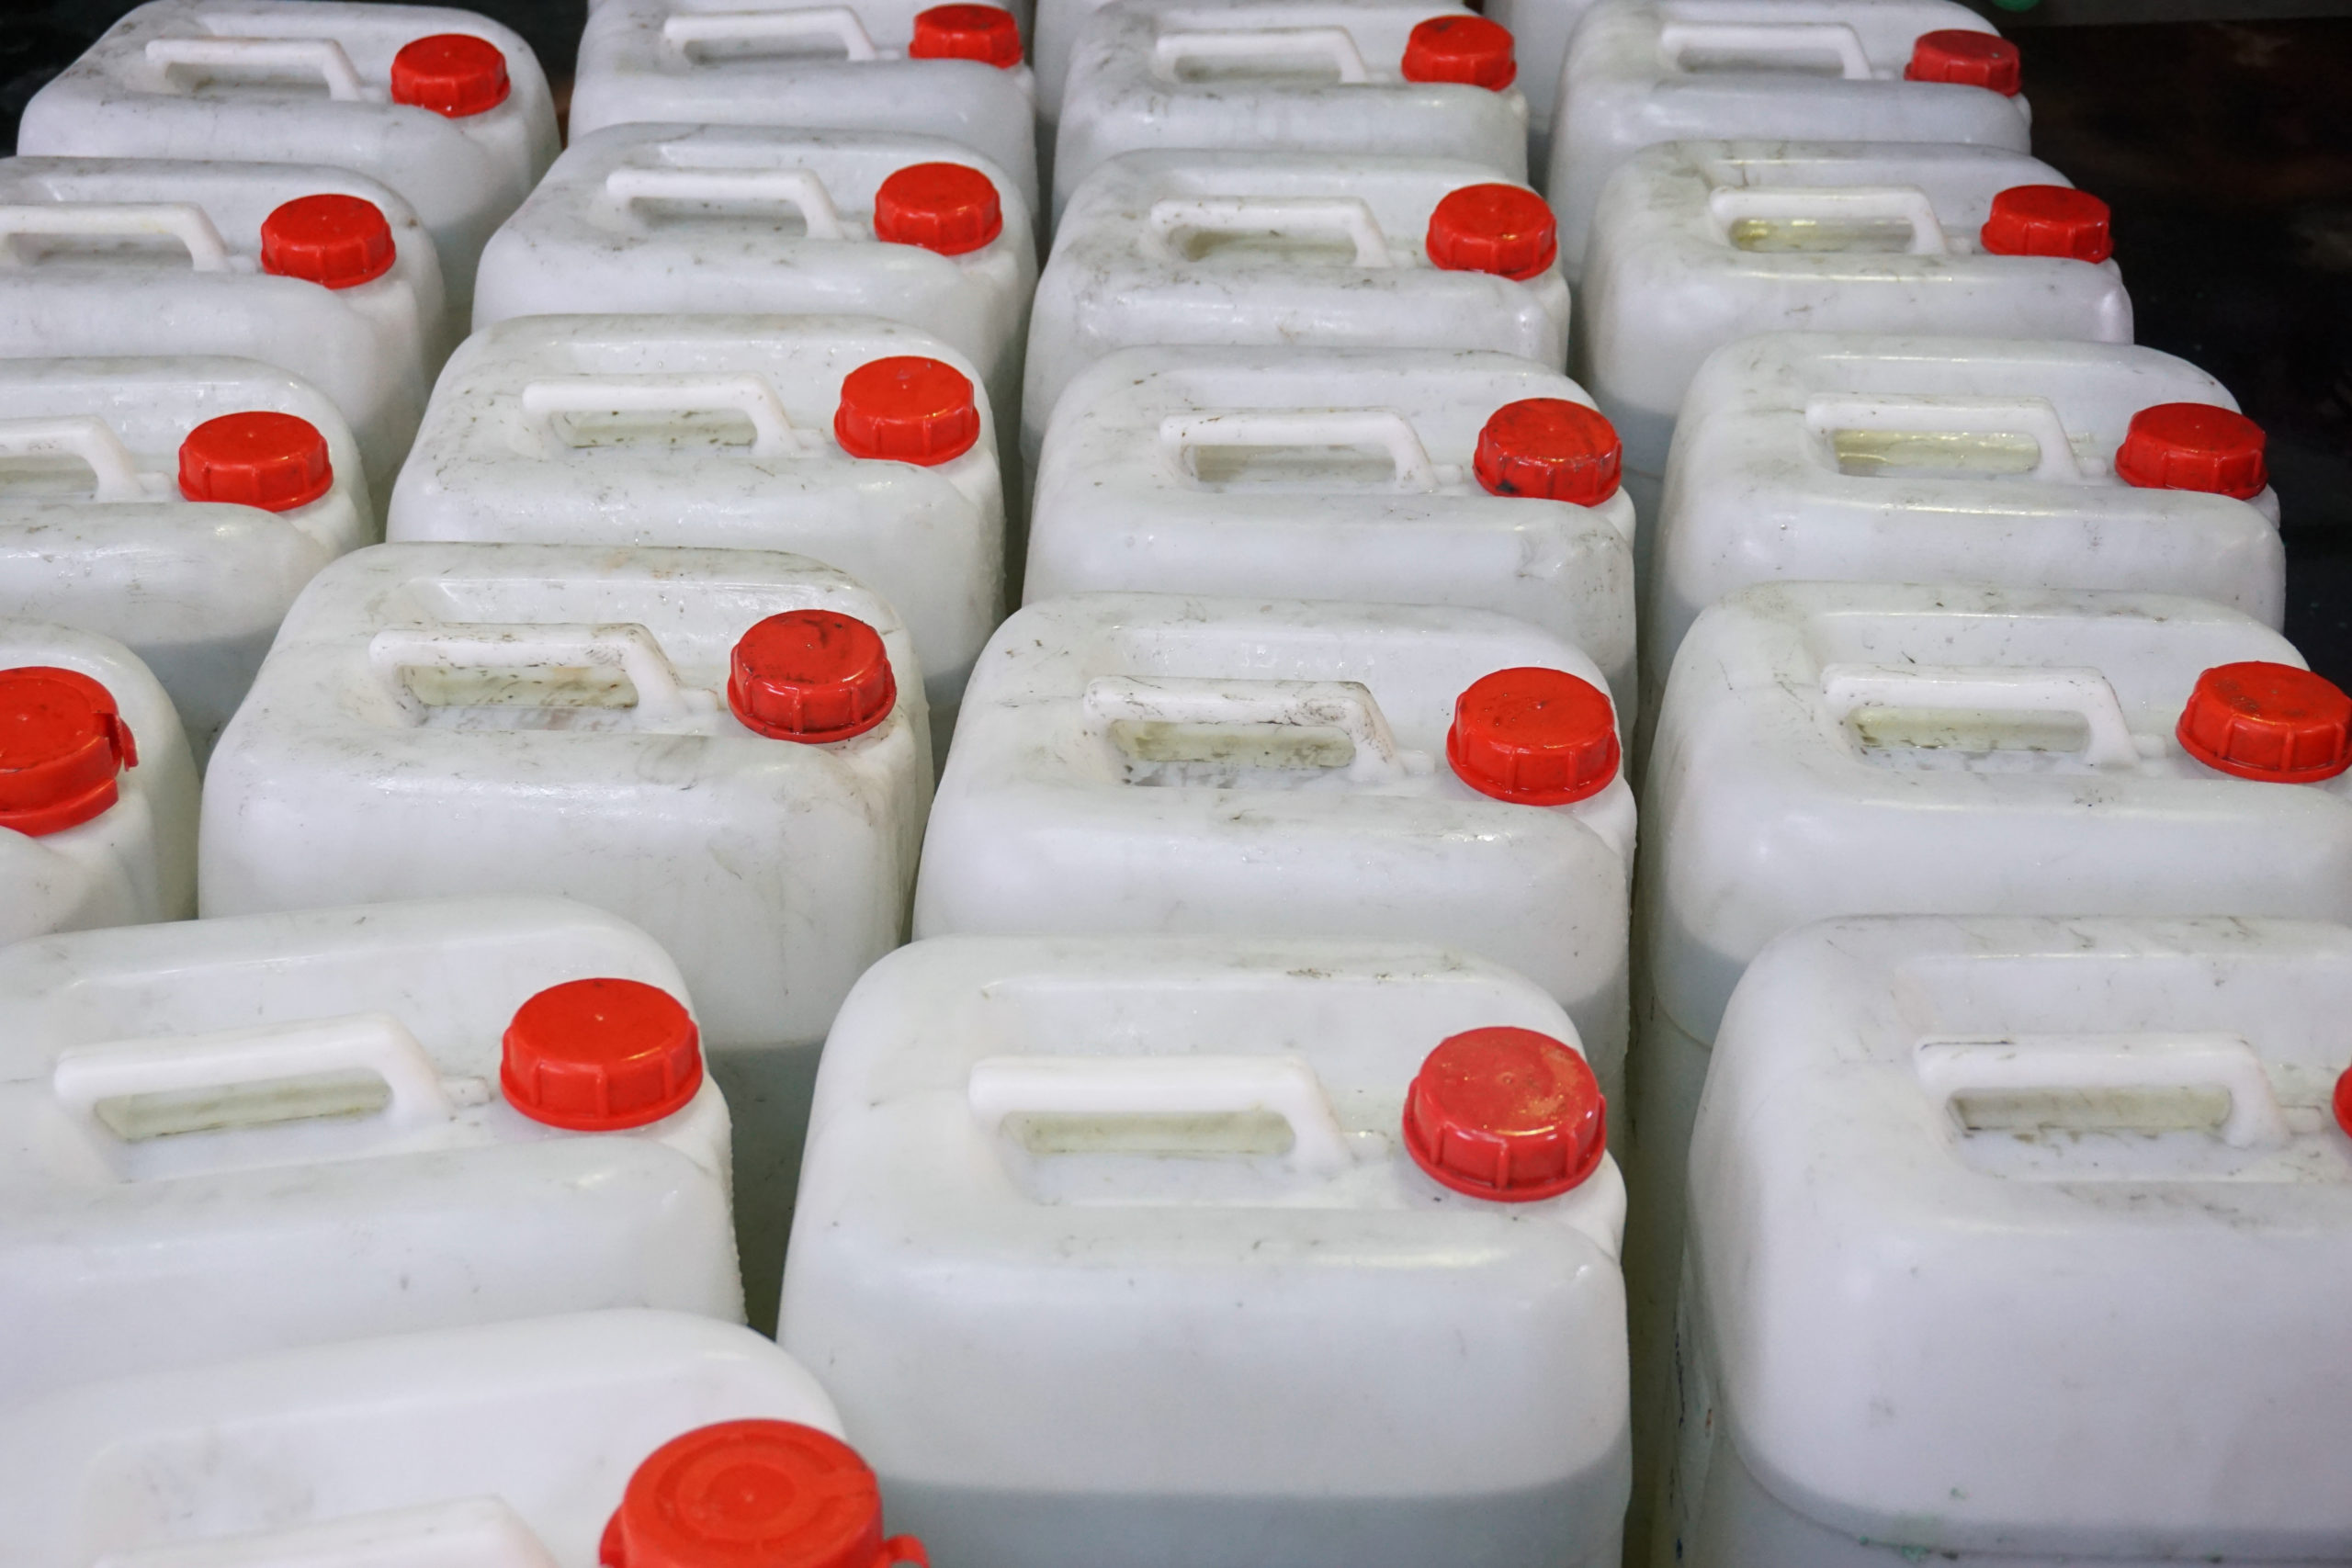 Group,Of,Chemical,Plastic,Container,In,The,Factory